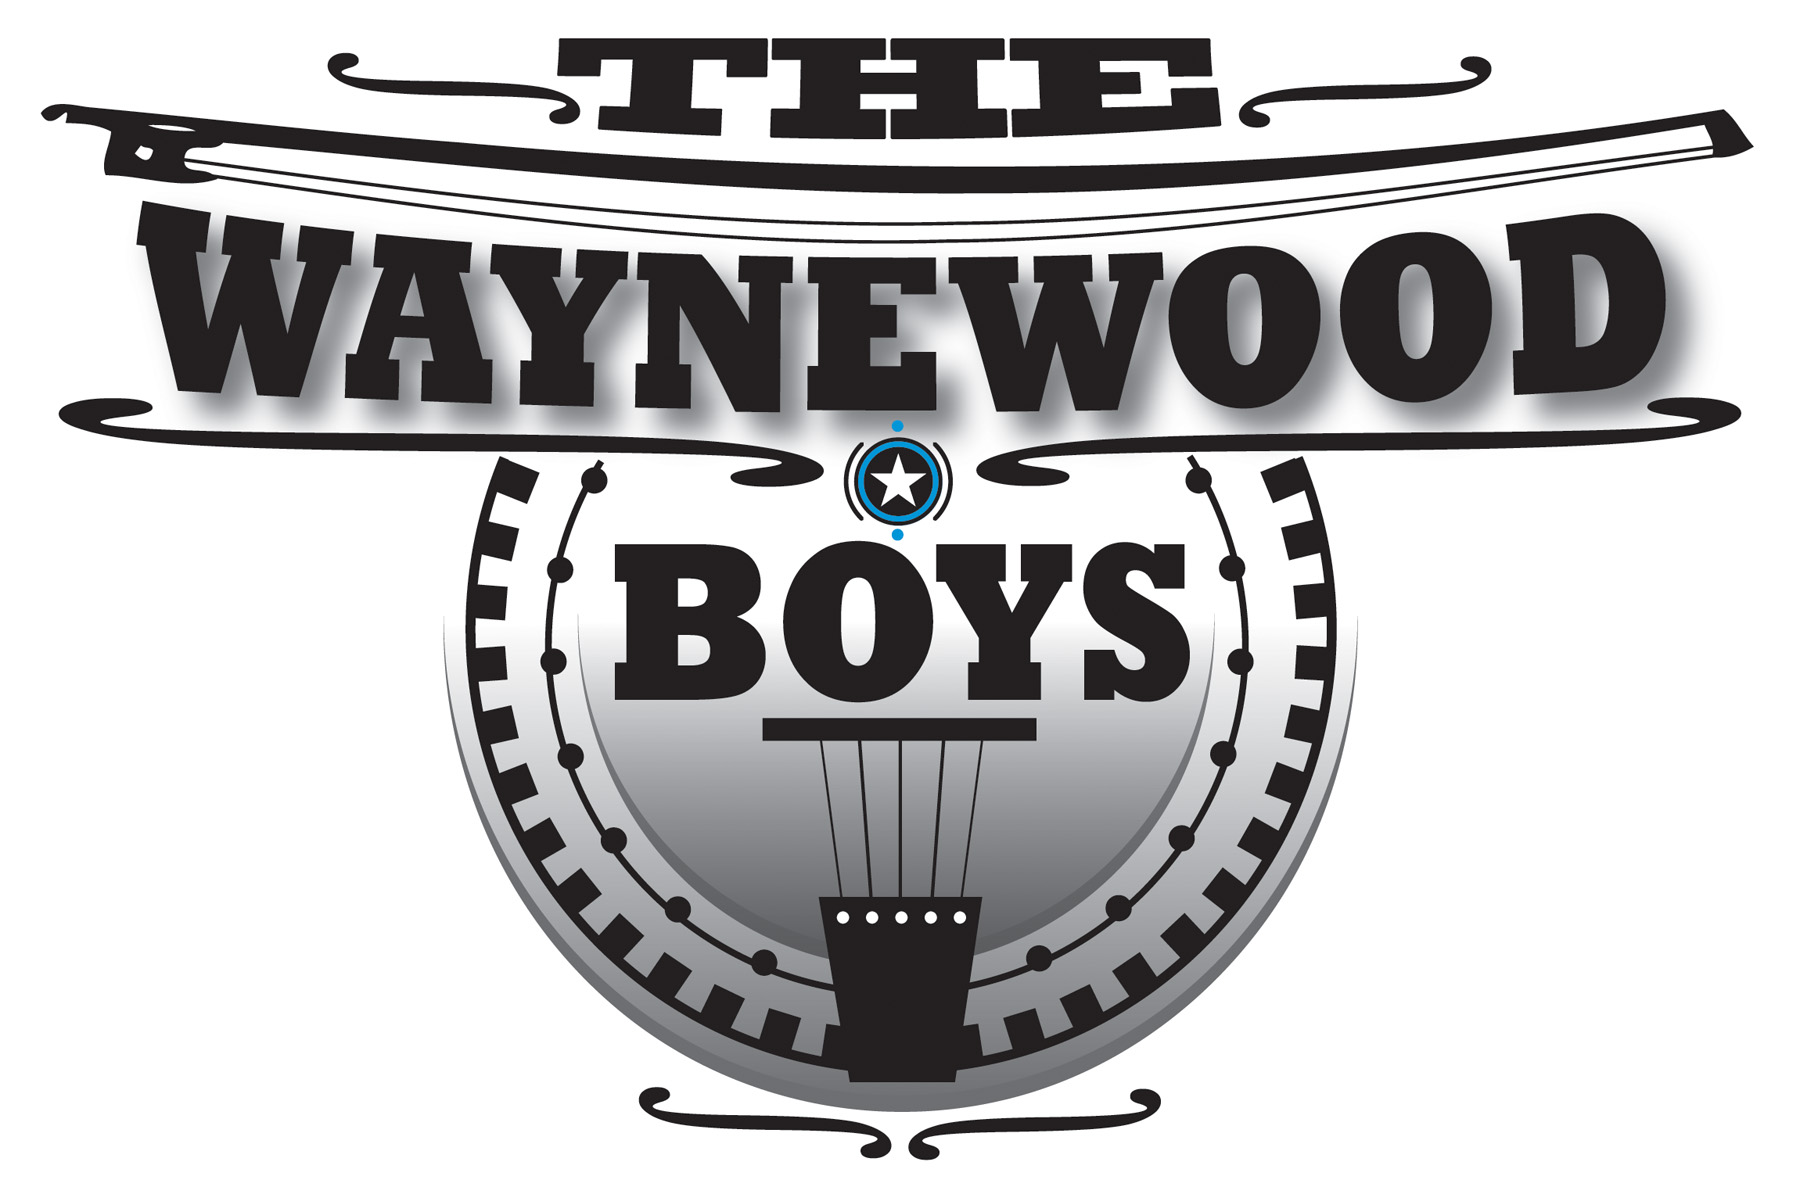 The Waynwood Boys